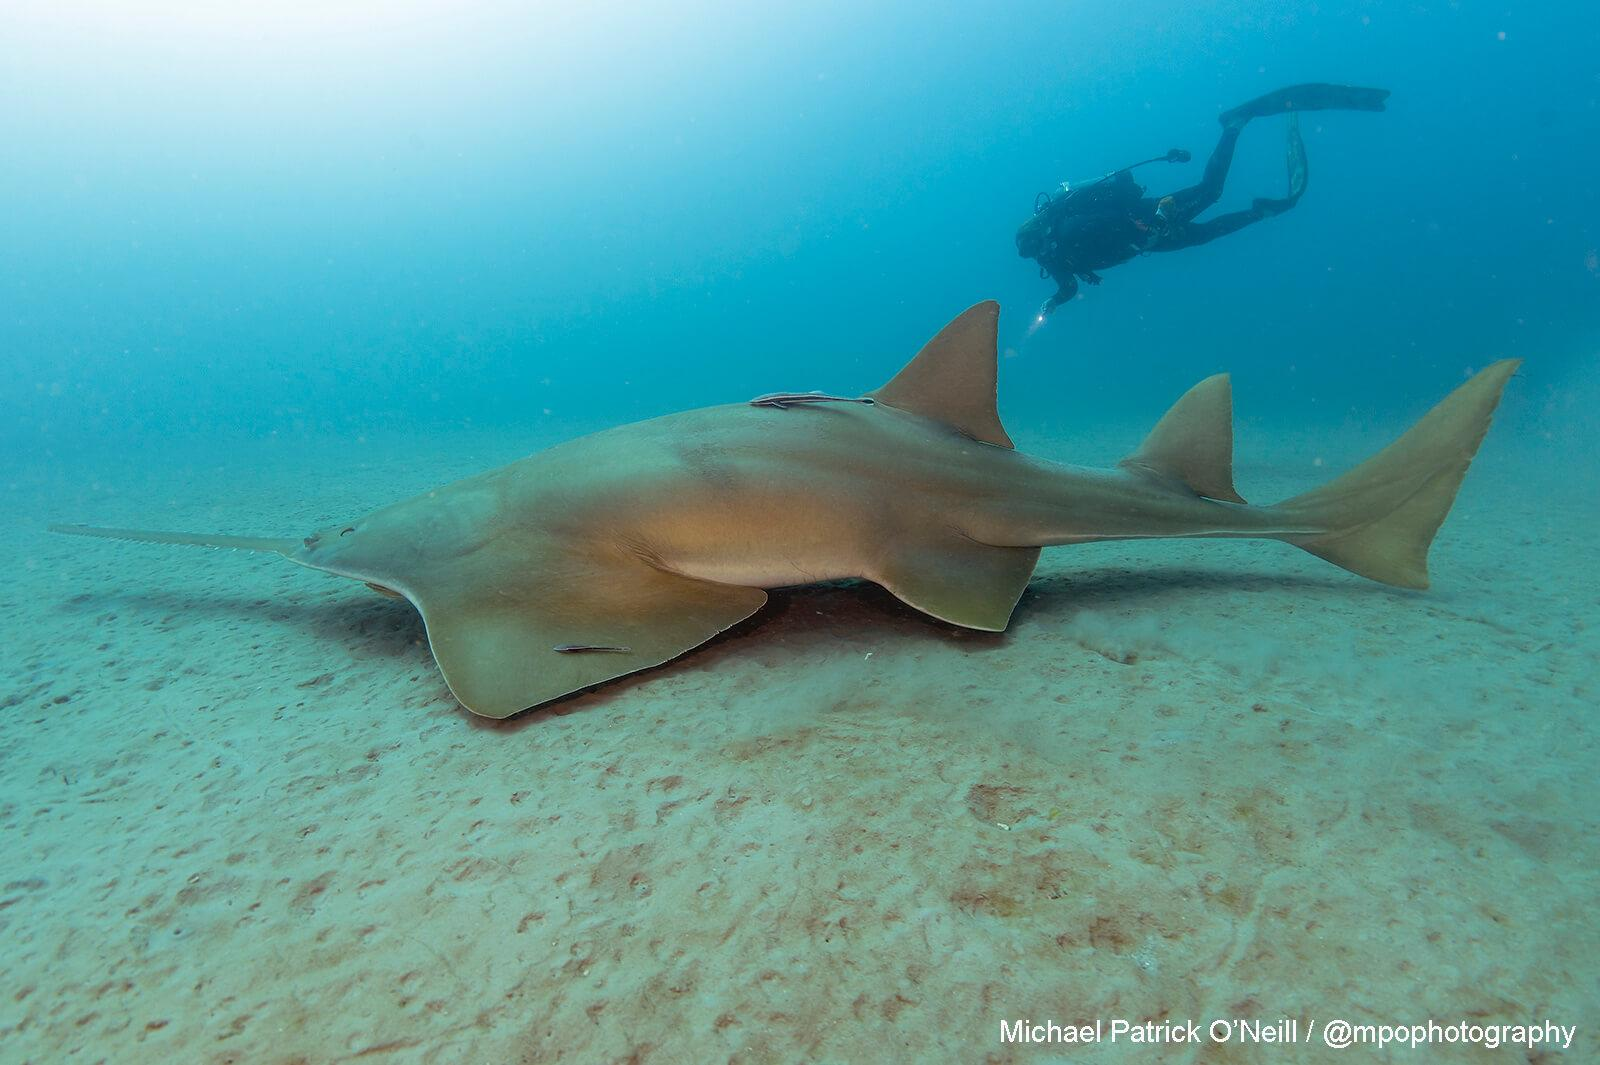 Sawfish, Florida. Underwater Photography by Michael Patrick O'Neill